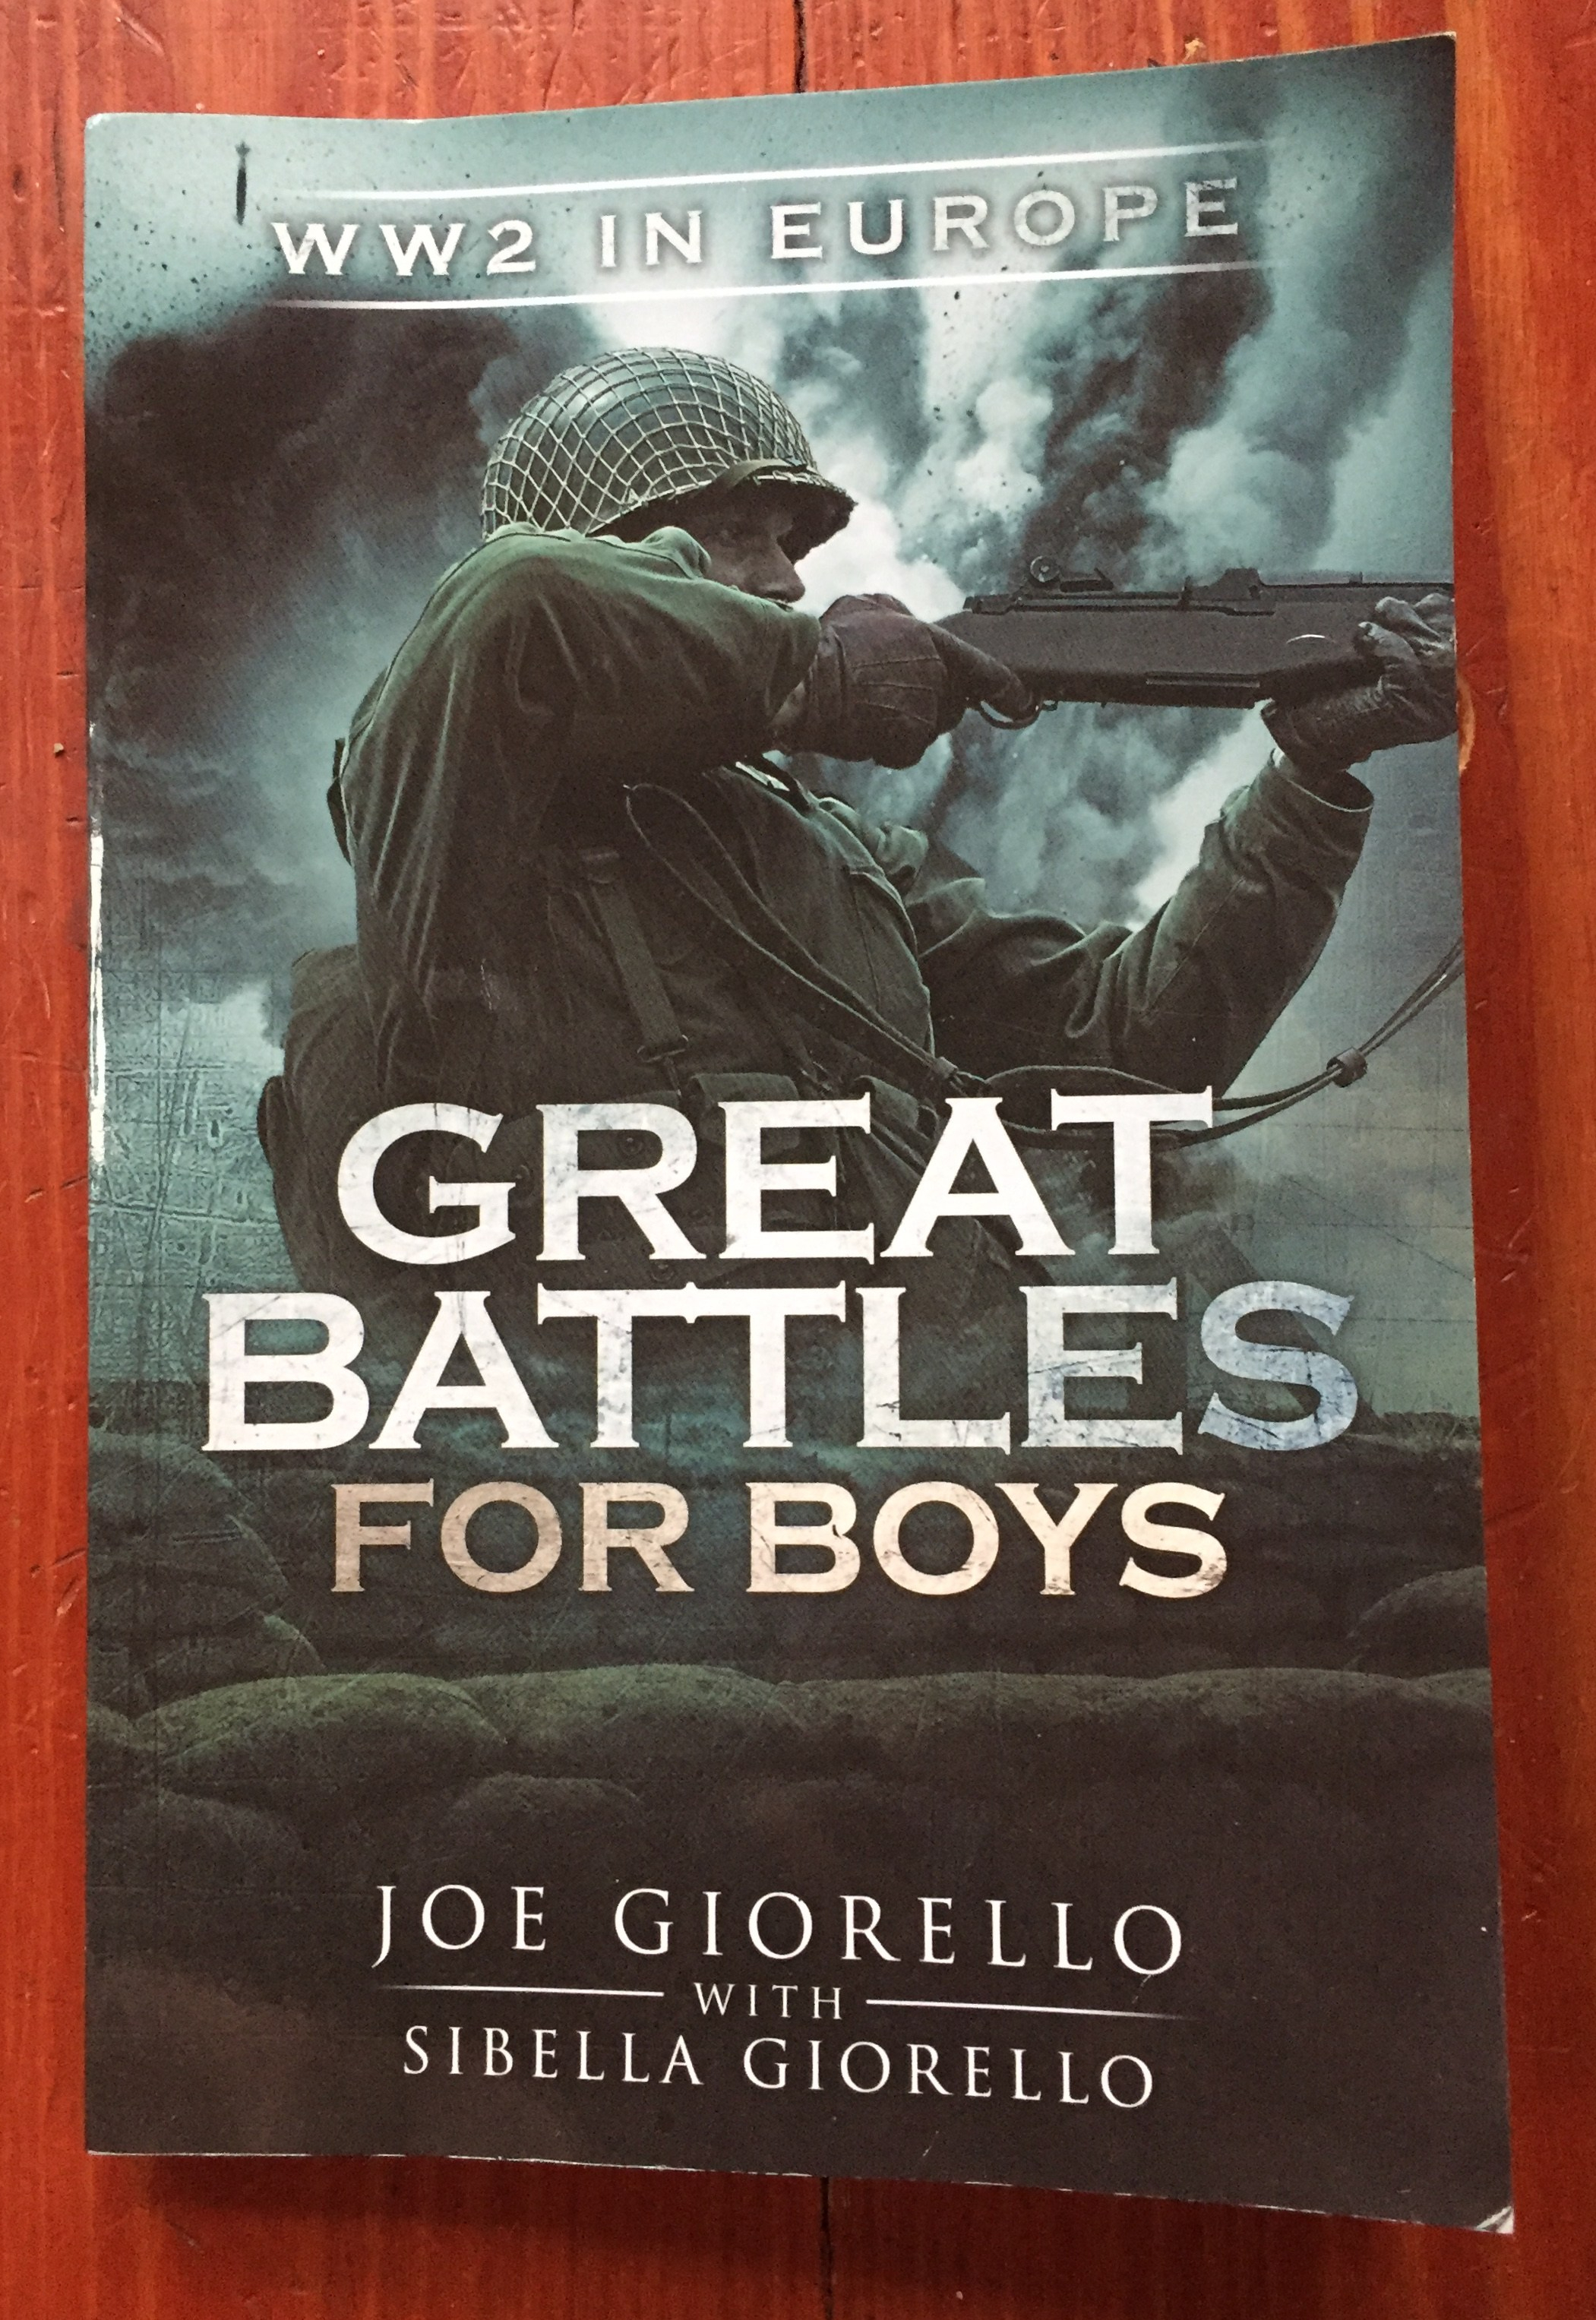 Great Battles for Boys WW2 in Europe book by Joe Giorello